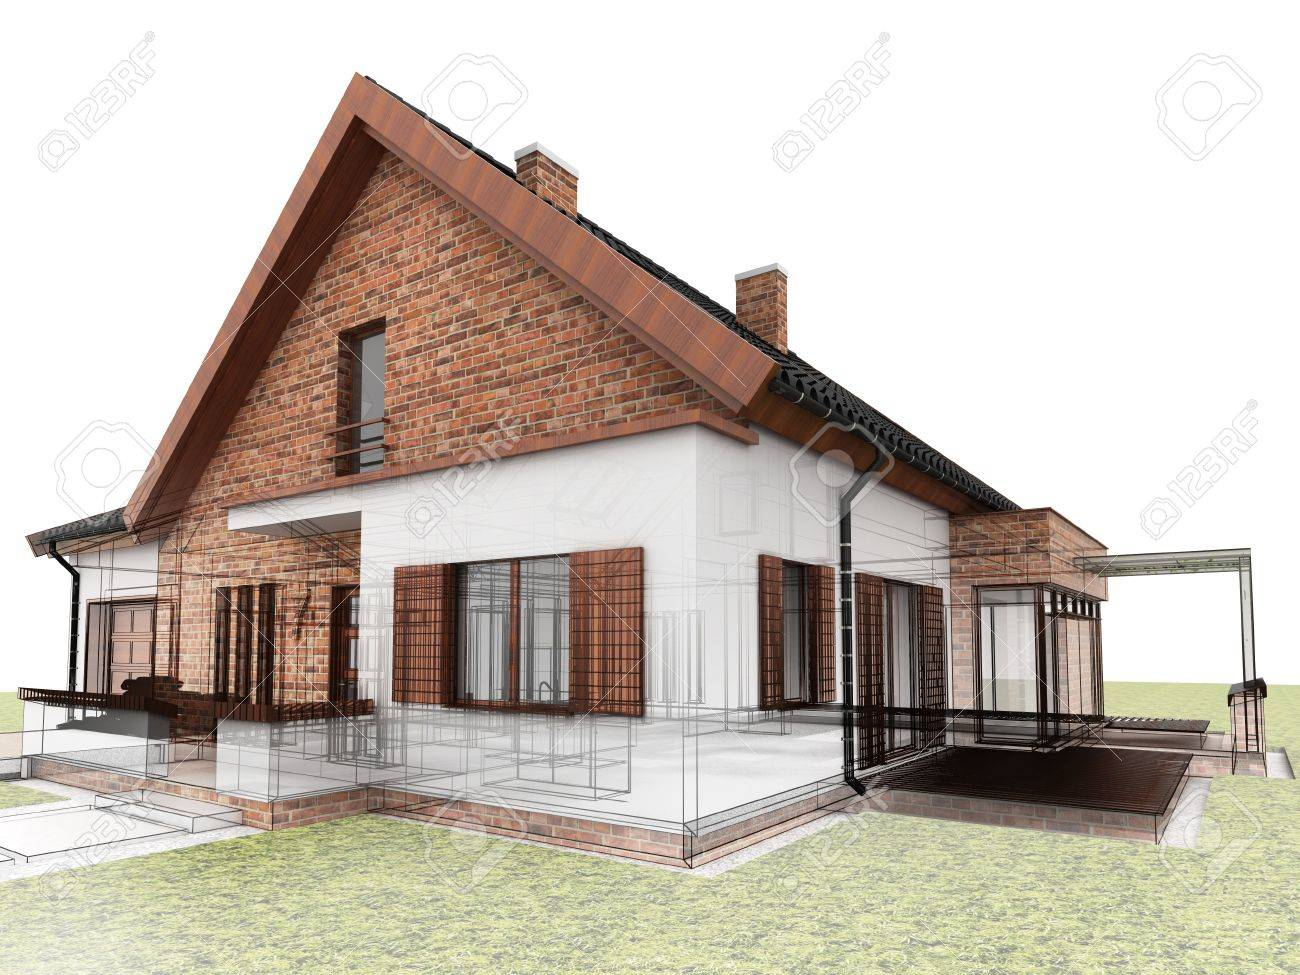 Classic House Design Progress, Architectural Drawing And Visualization  Stock Photo   16153220